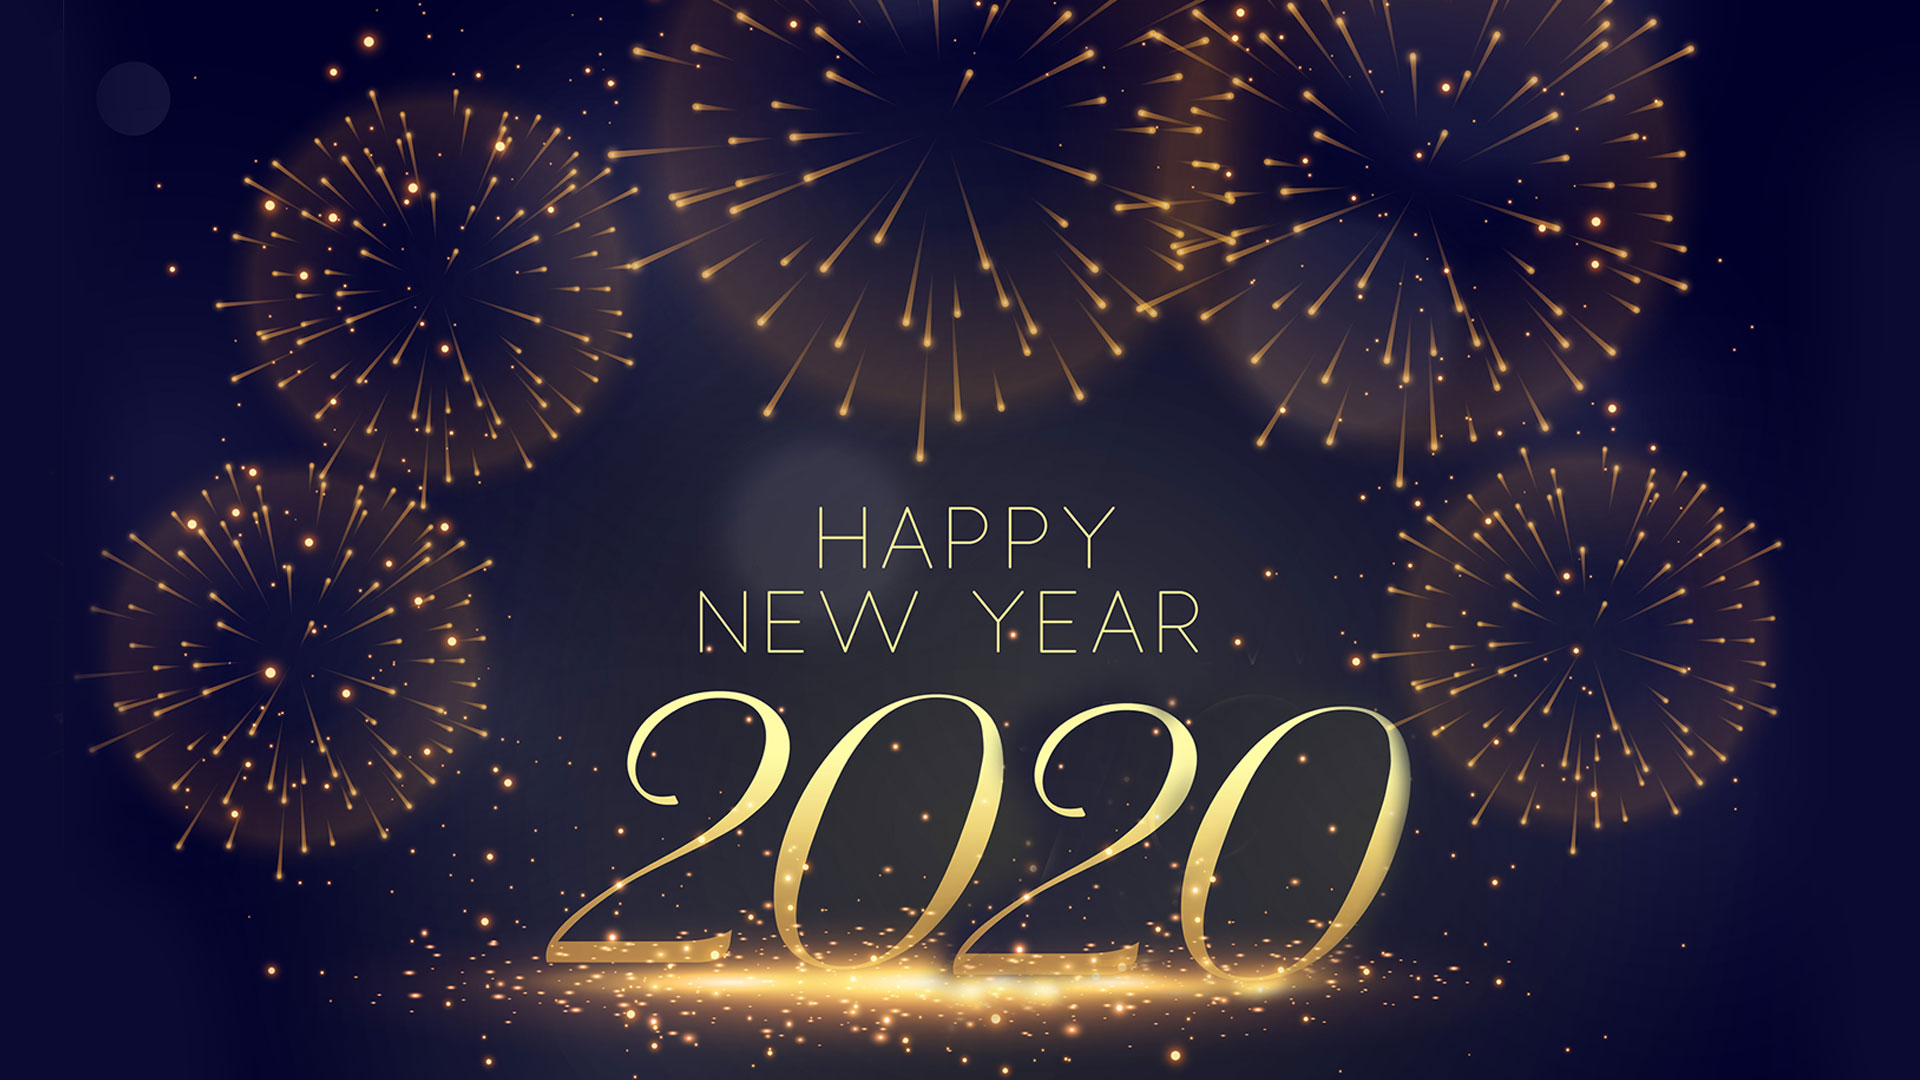 download 2020 Happy New Year HD Wallpapers Images Download 1920x1080